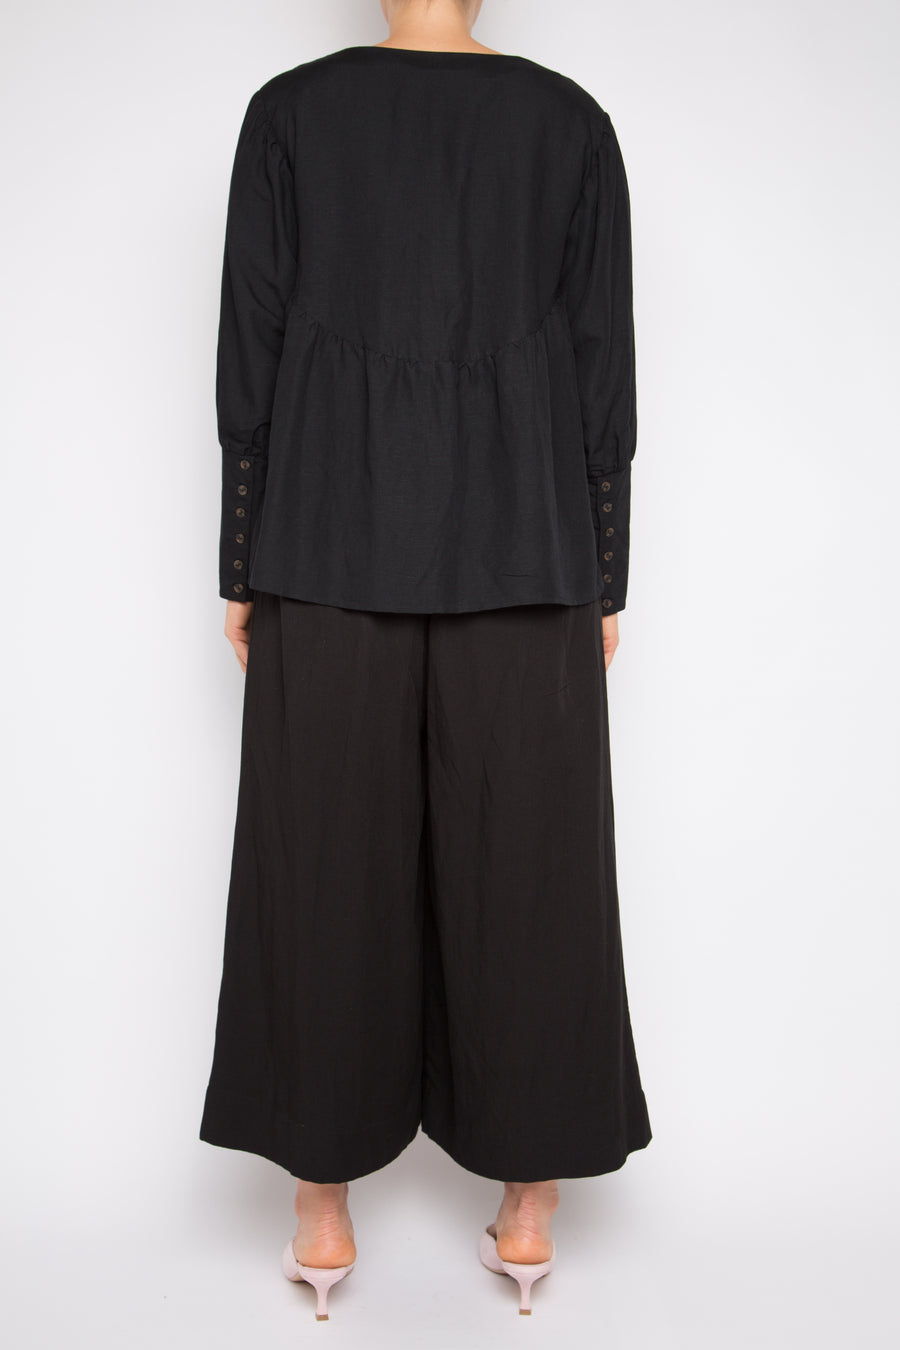 Paqin Top in Black